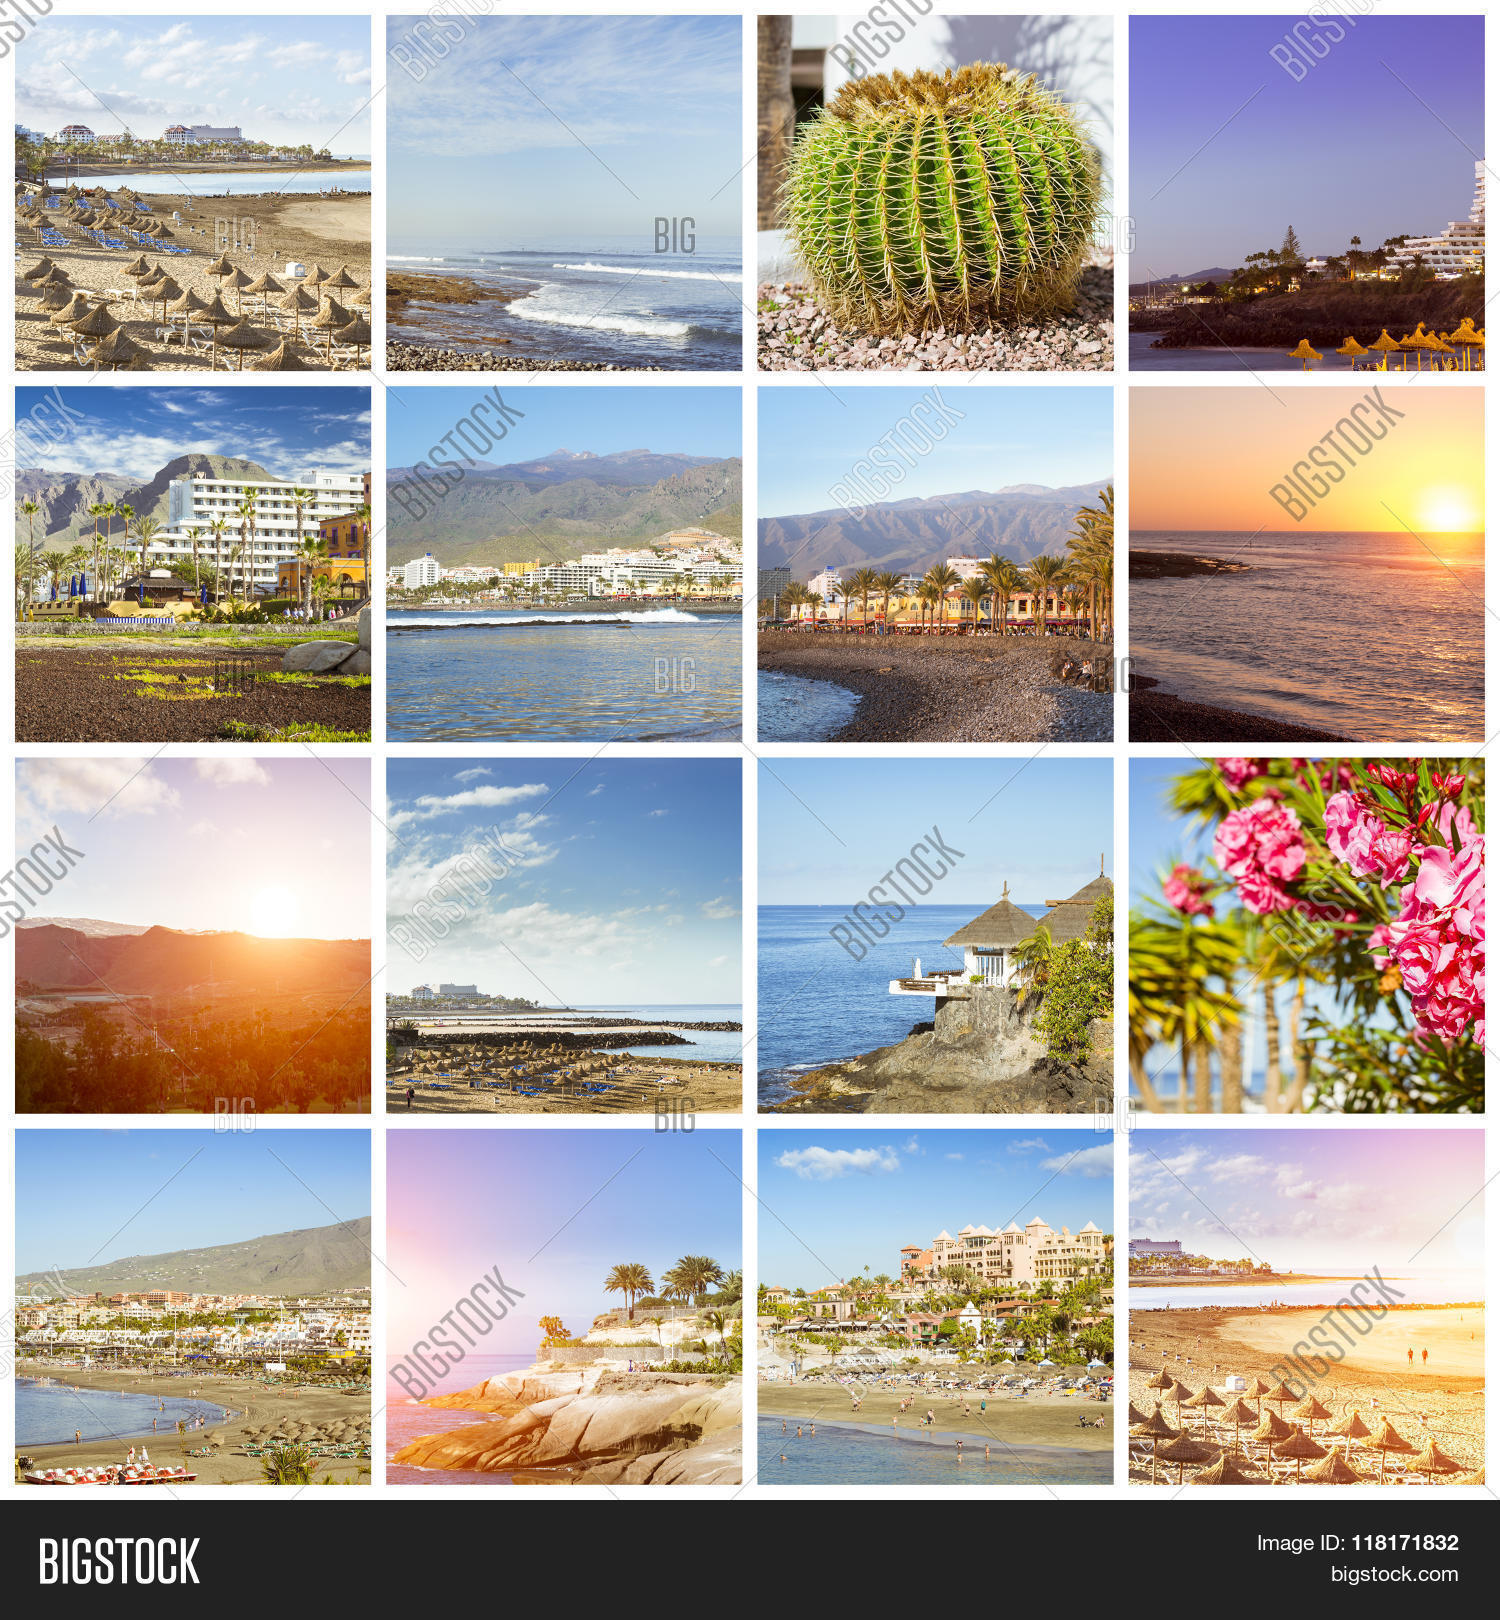 Tenerife Collage, Image & Photo (Free Trial) | Bigstock